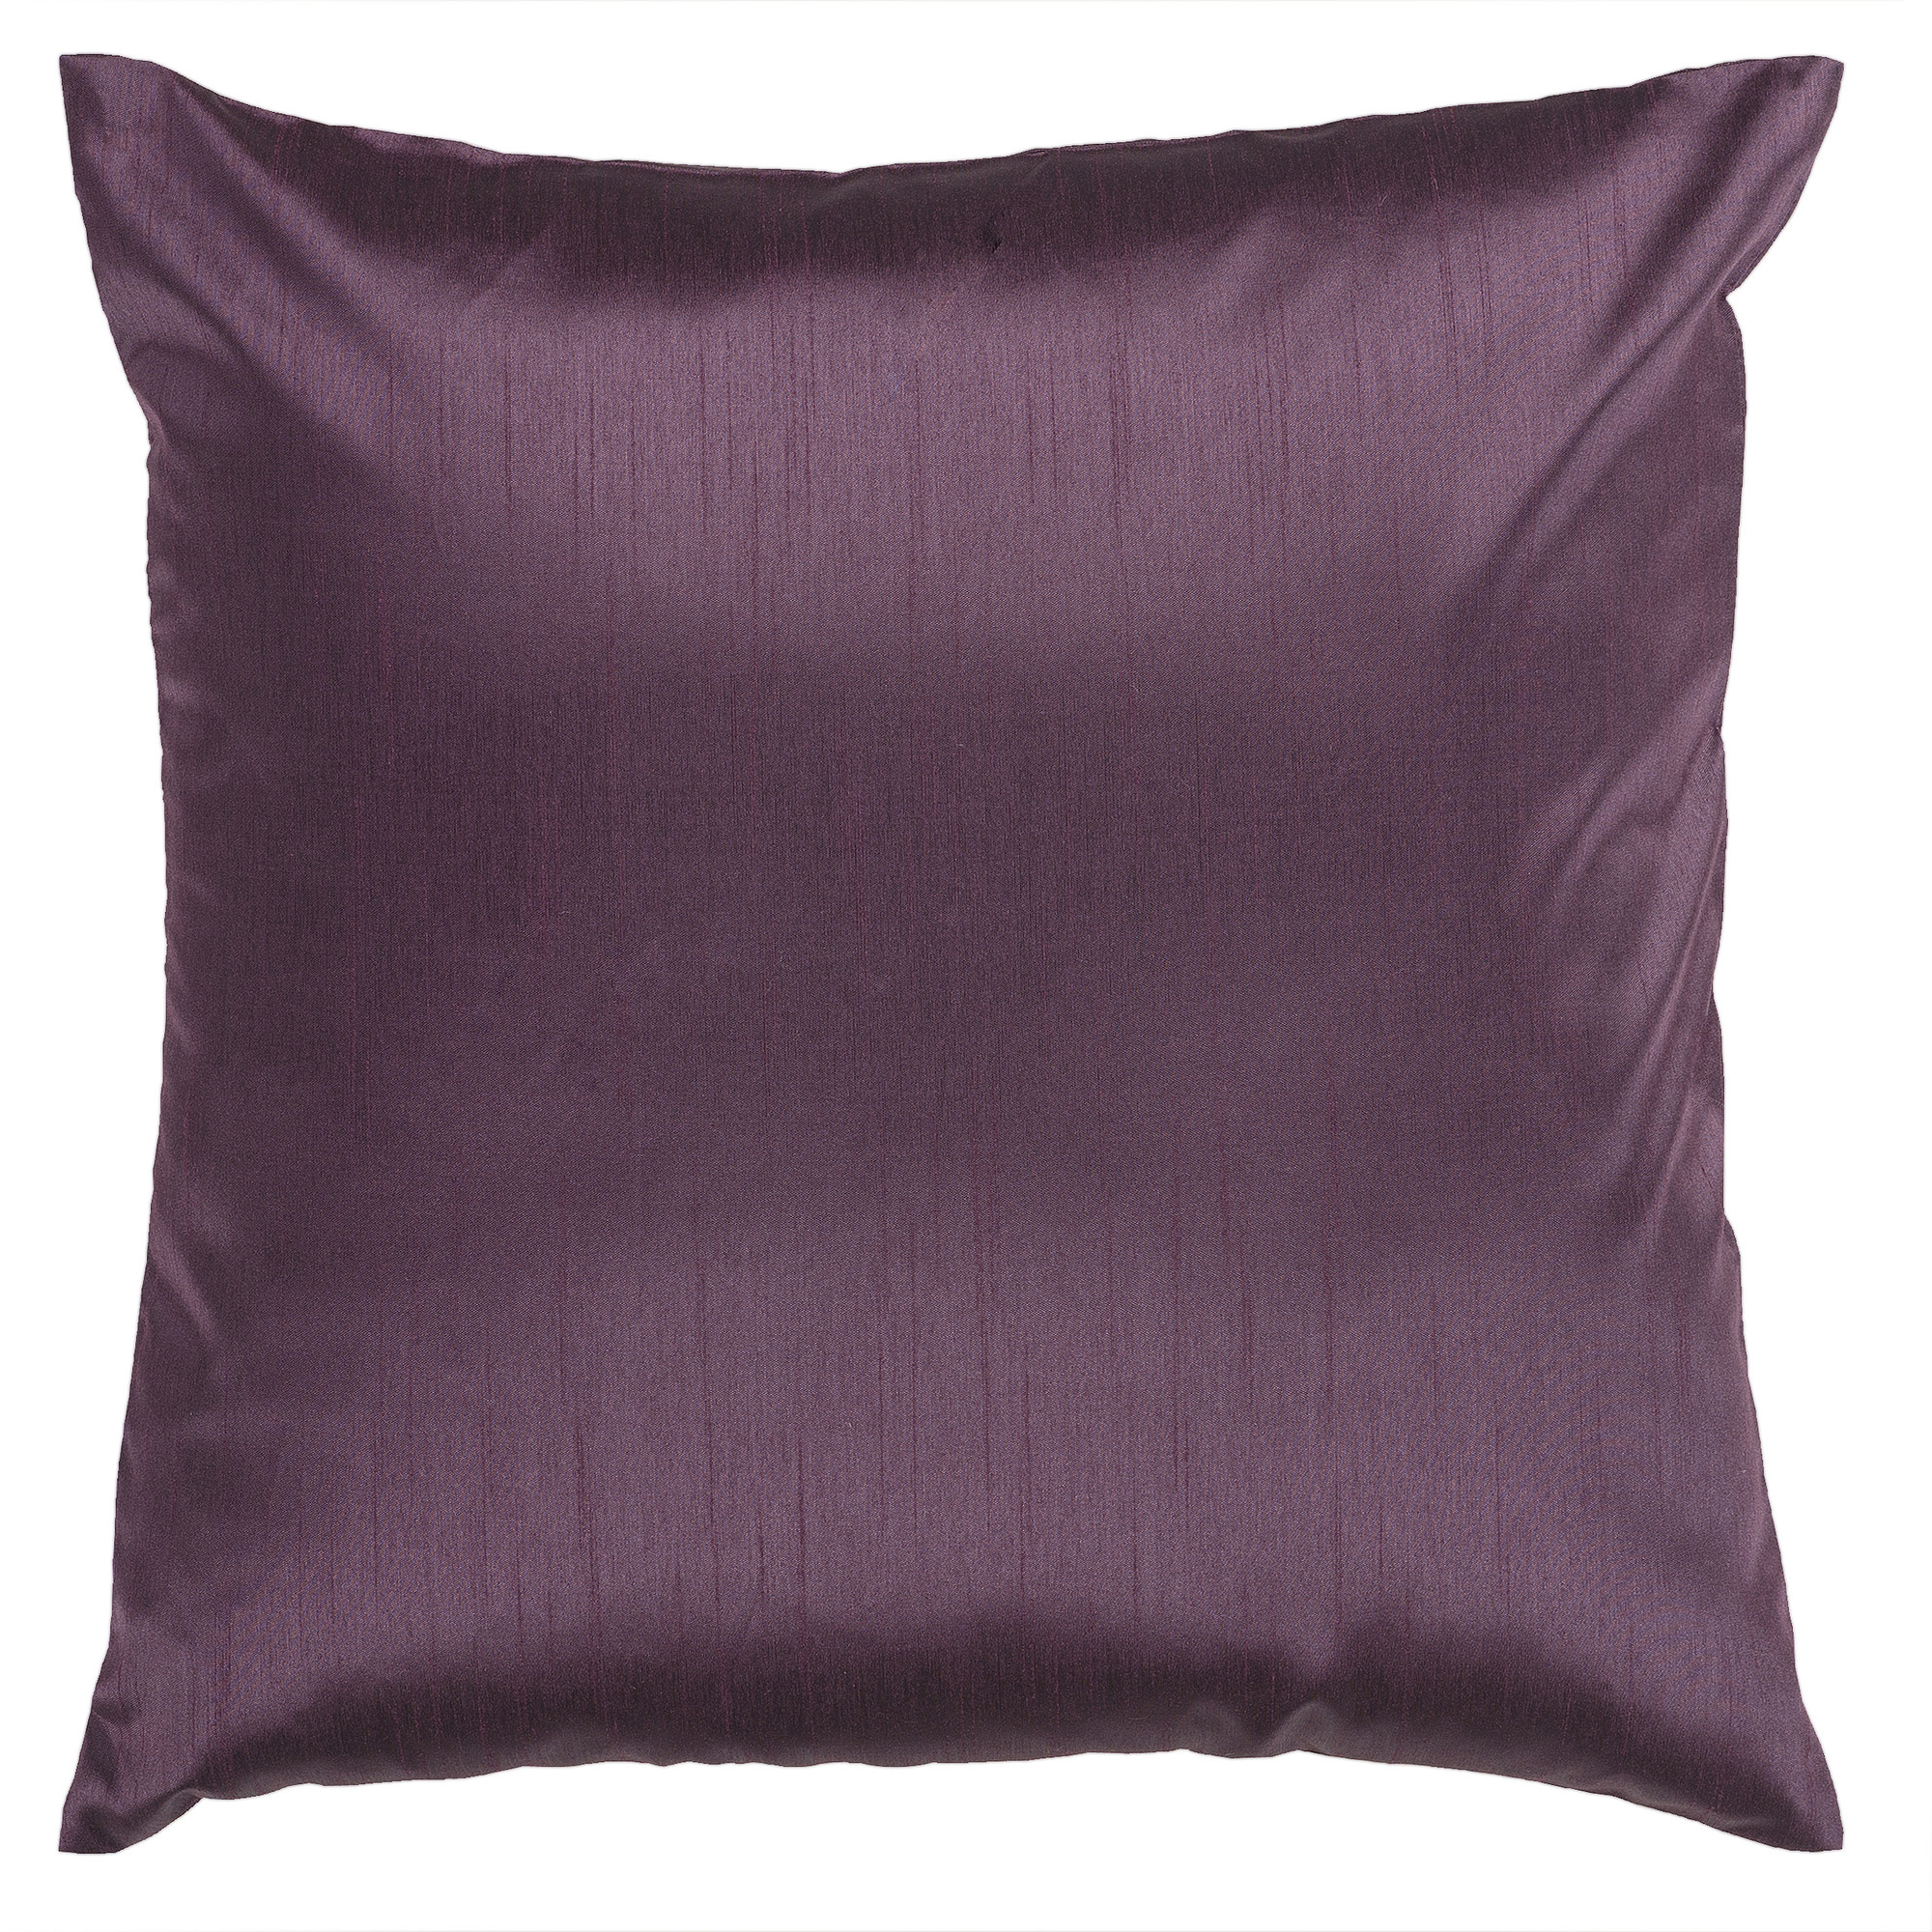 Art of Knot Shiny Solid Hand Crafted Decorative Pillow, Prune